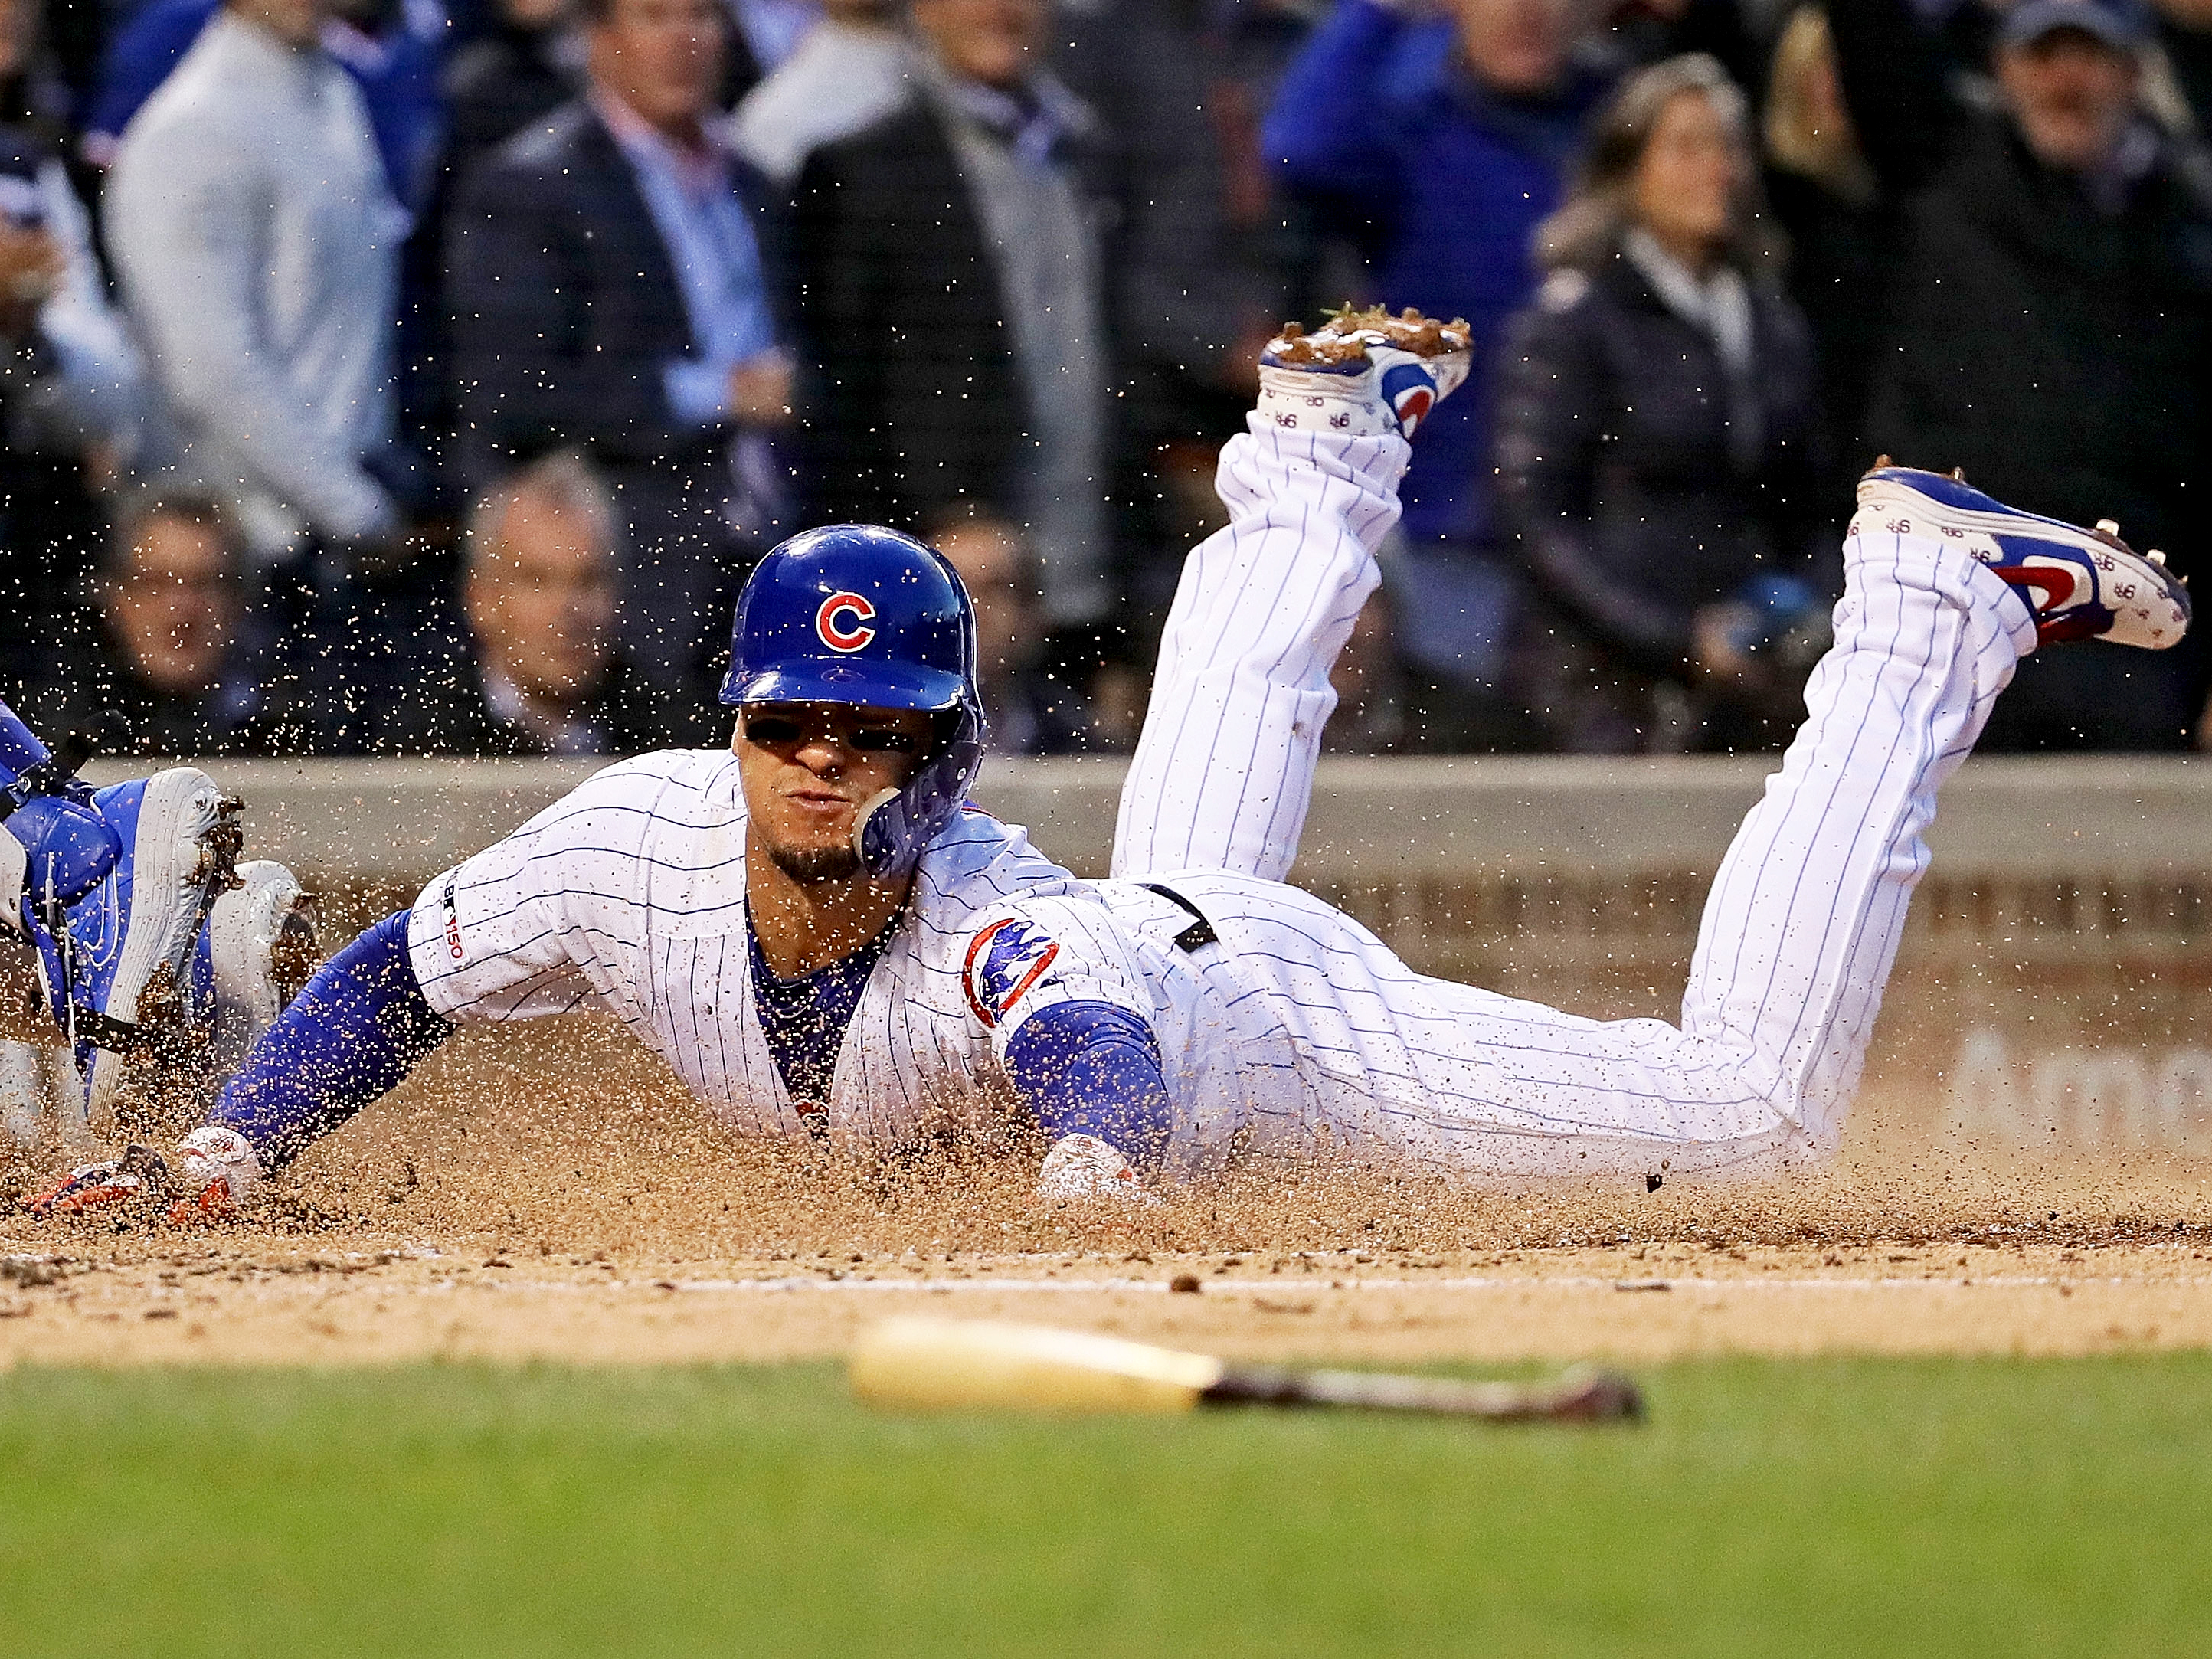 timeless design 508fb 03663 Javier Baez jukes first baseman for hit in Cubs-Dodgers game ...